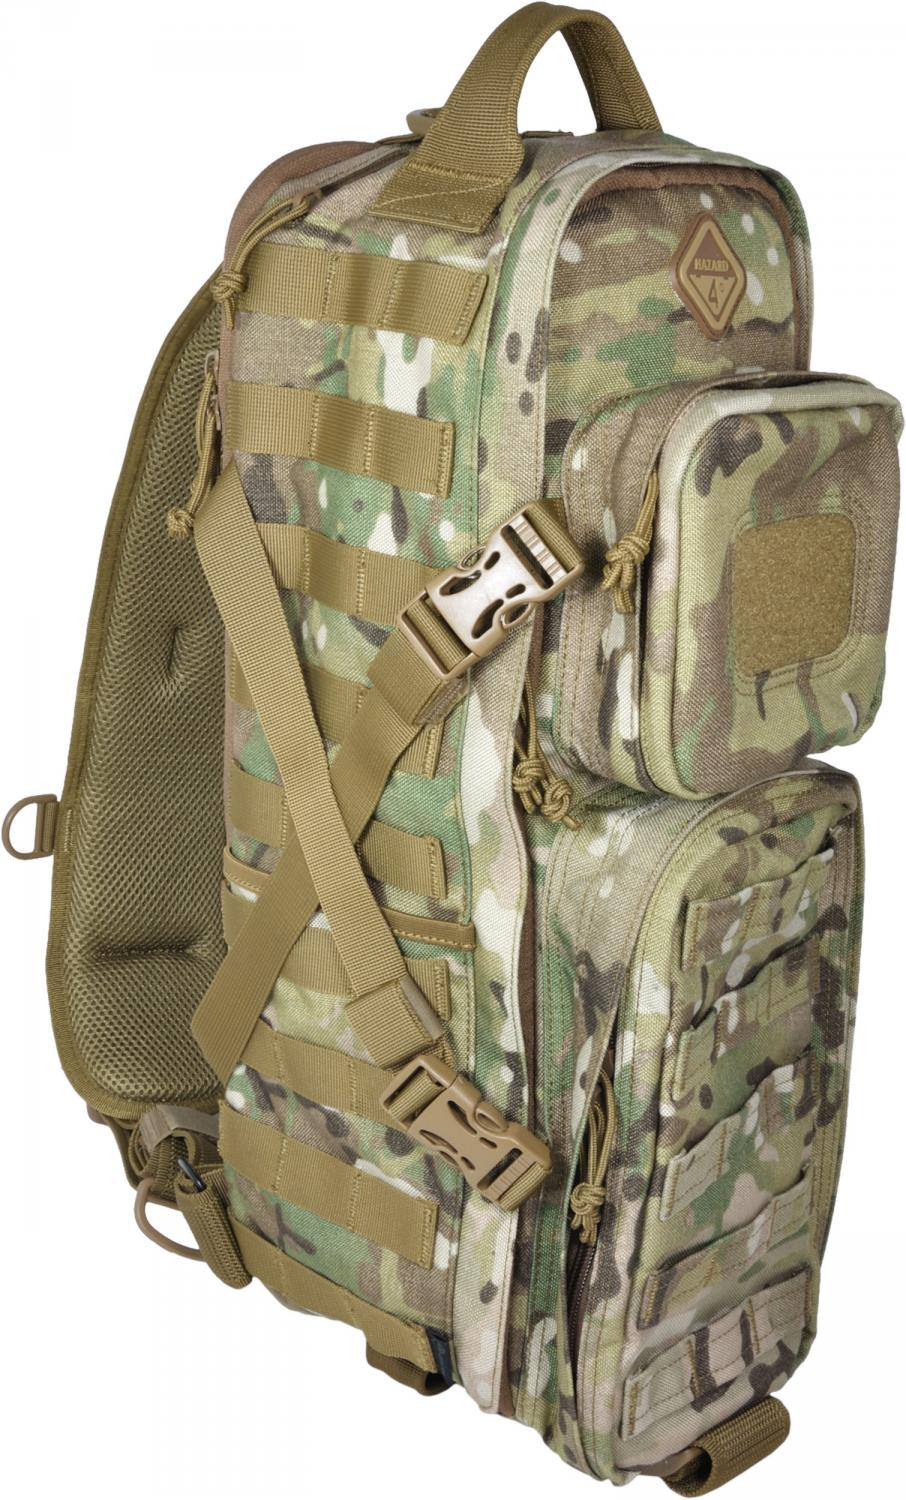 Hazard 4 Evac Plan B Sling Pack, MultiCam